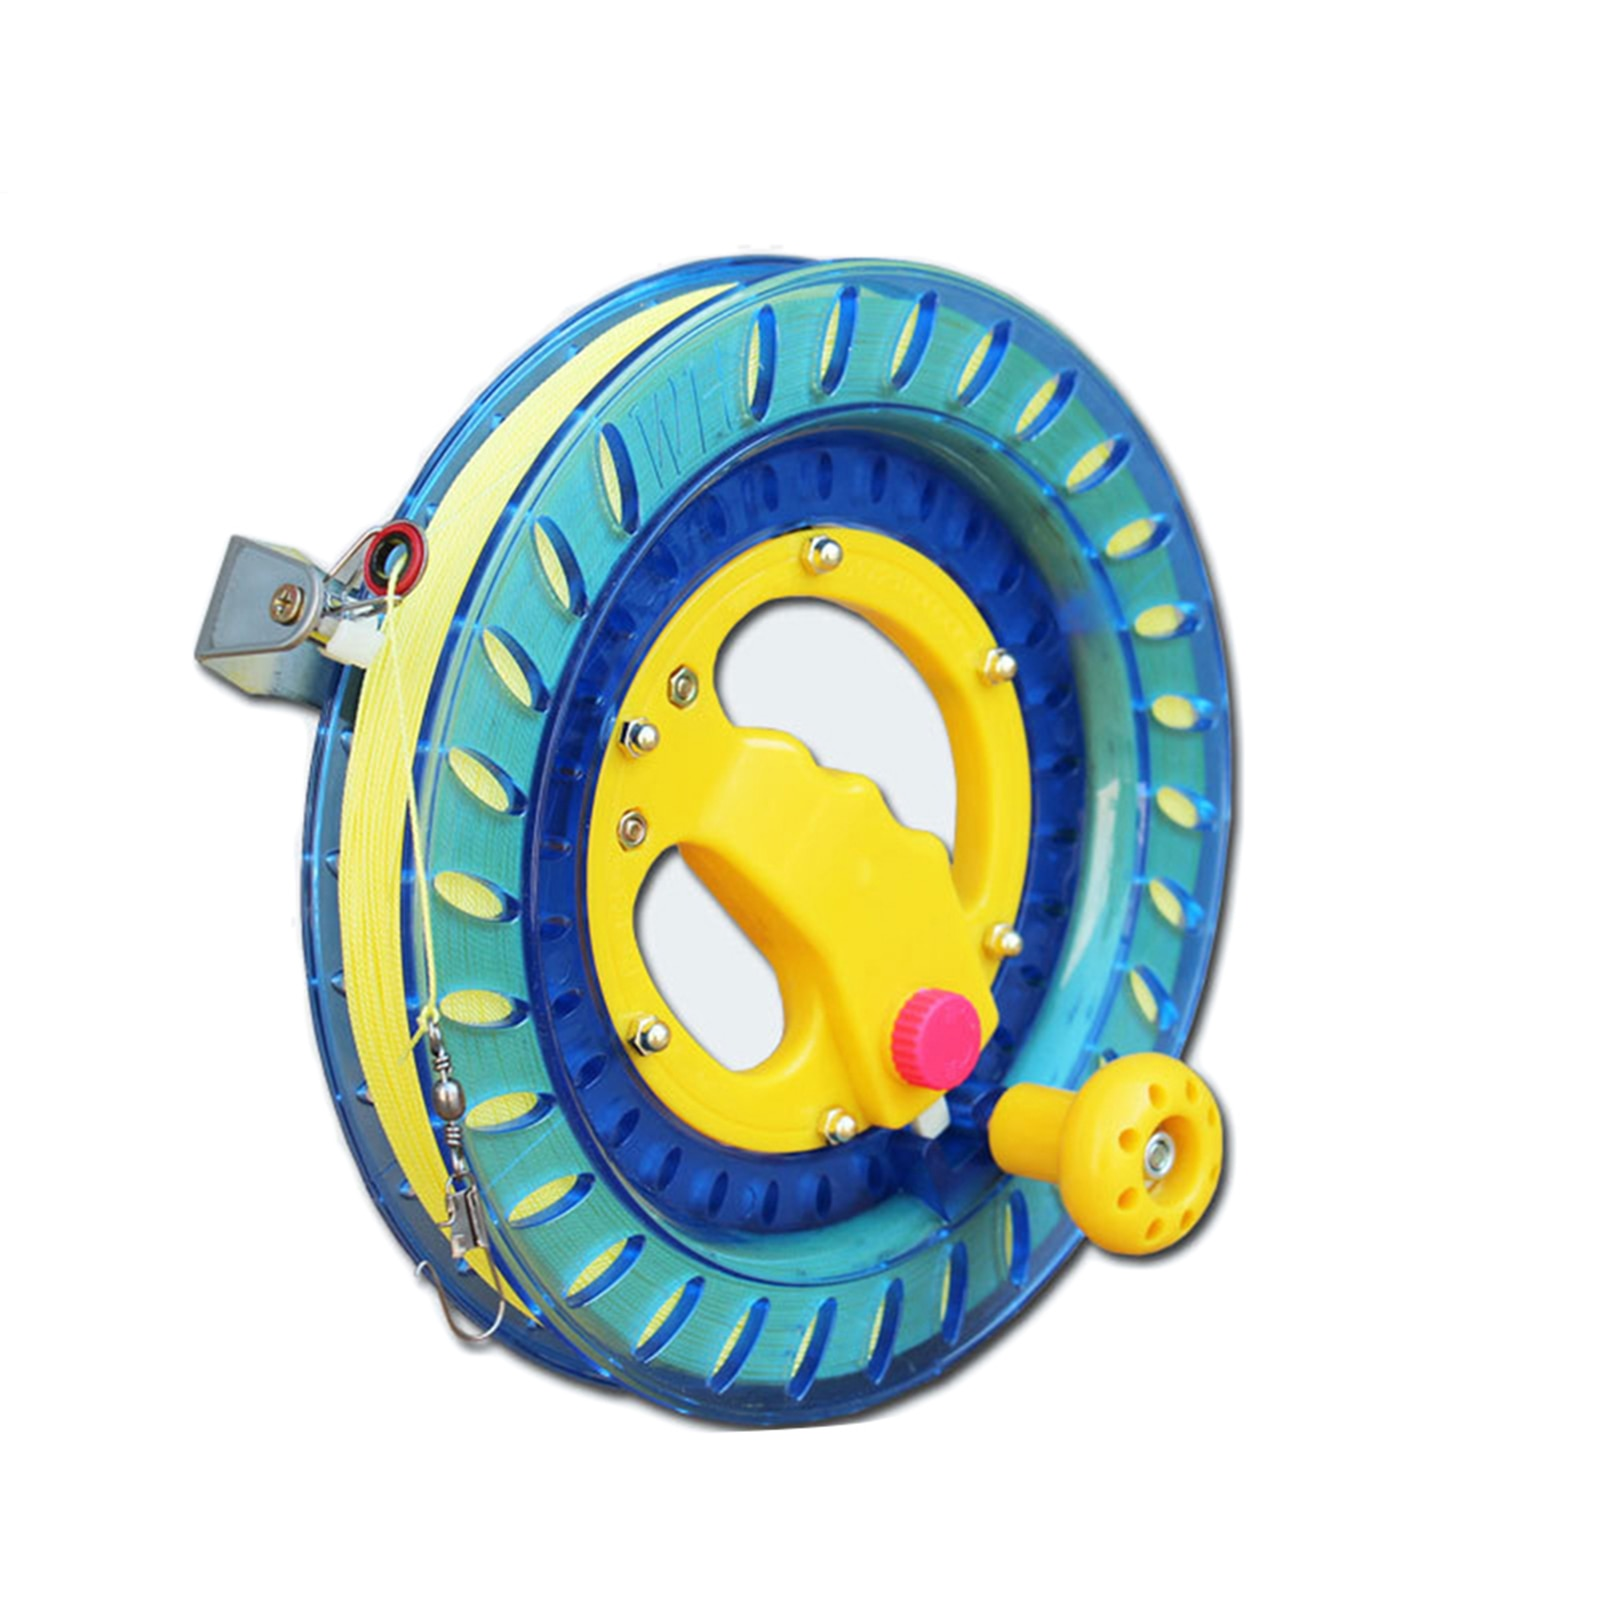 Professional Kite Line Winder Winding Reel Grip Wheel + String Flying Tools & Lock Kit For Children Adults  - buy with discount